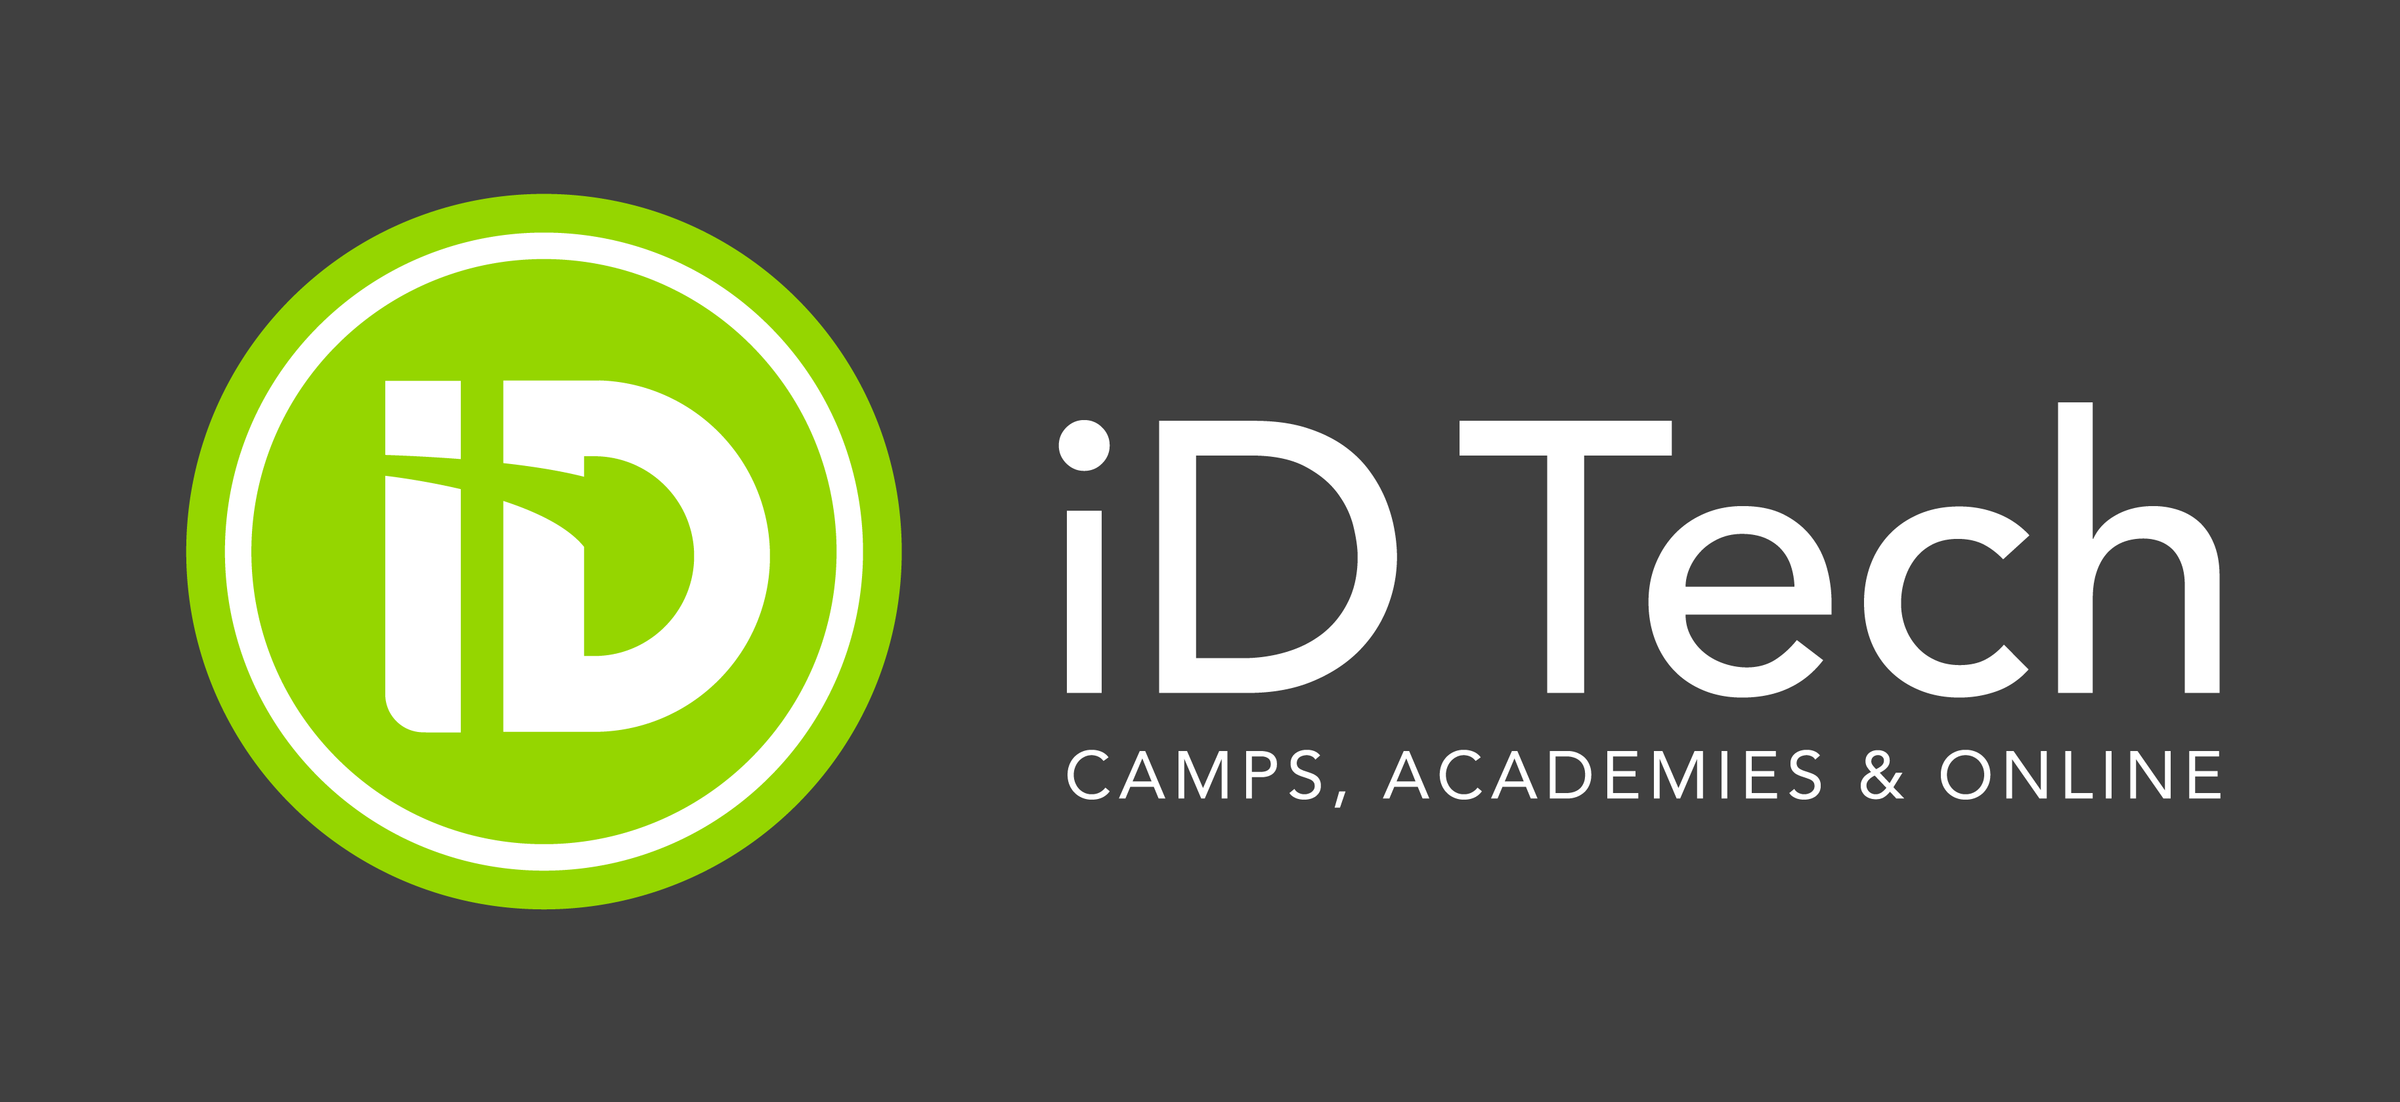 iD Tech Camps: #1 in STEM Education - Held at University of Missouri - Kansas City